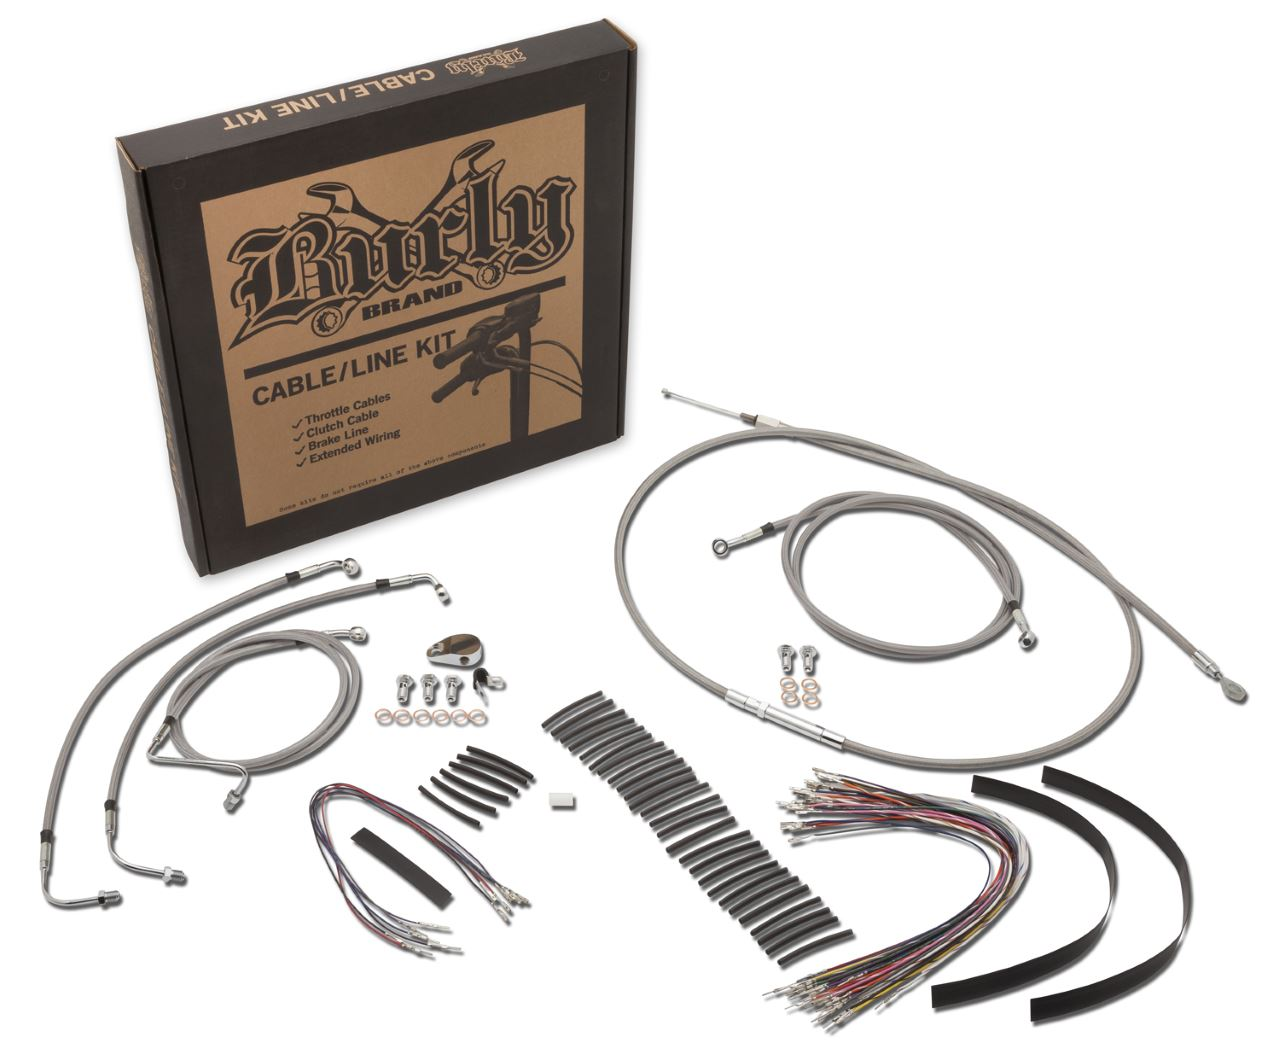 Braided Stainless Steel Cable Kits for Baggers | CABLE KITS | Burly